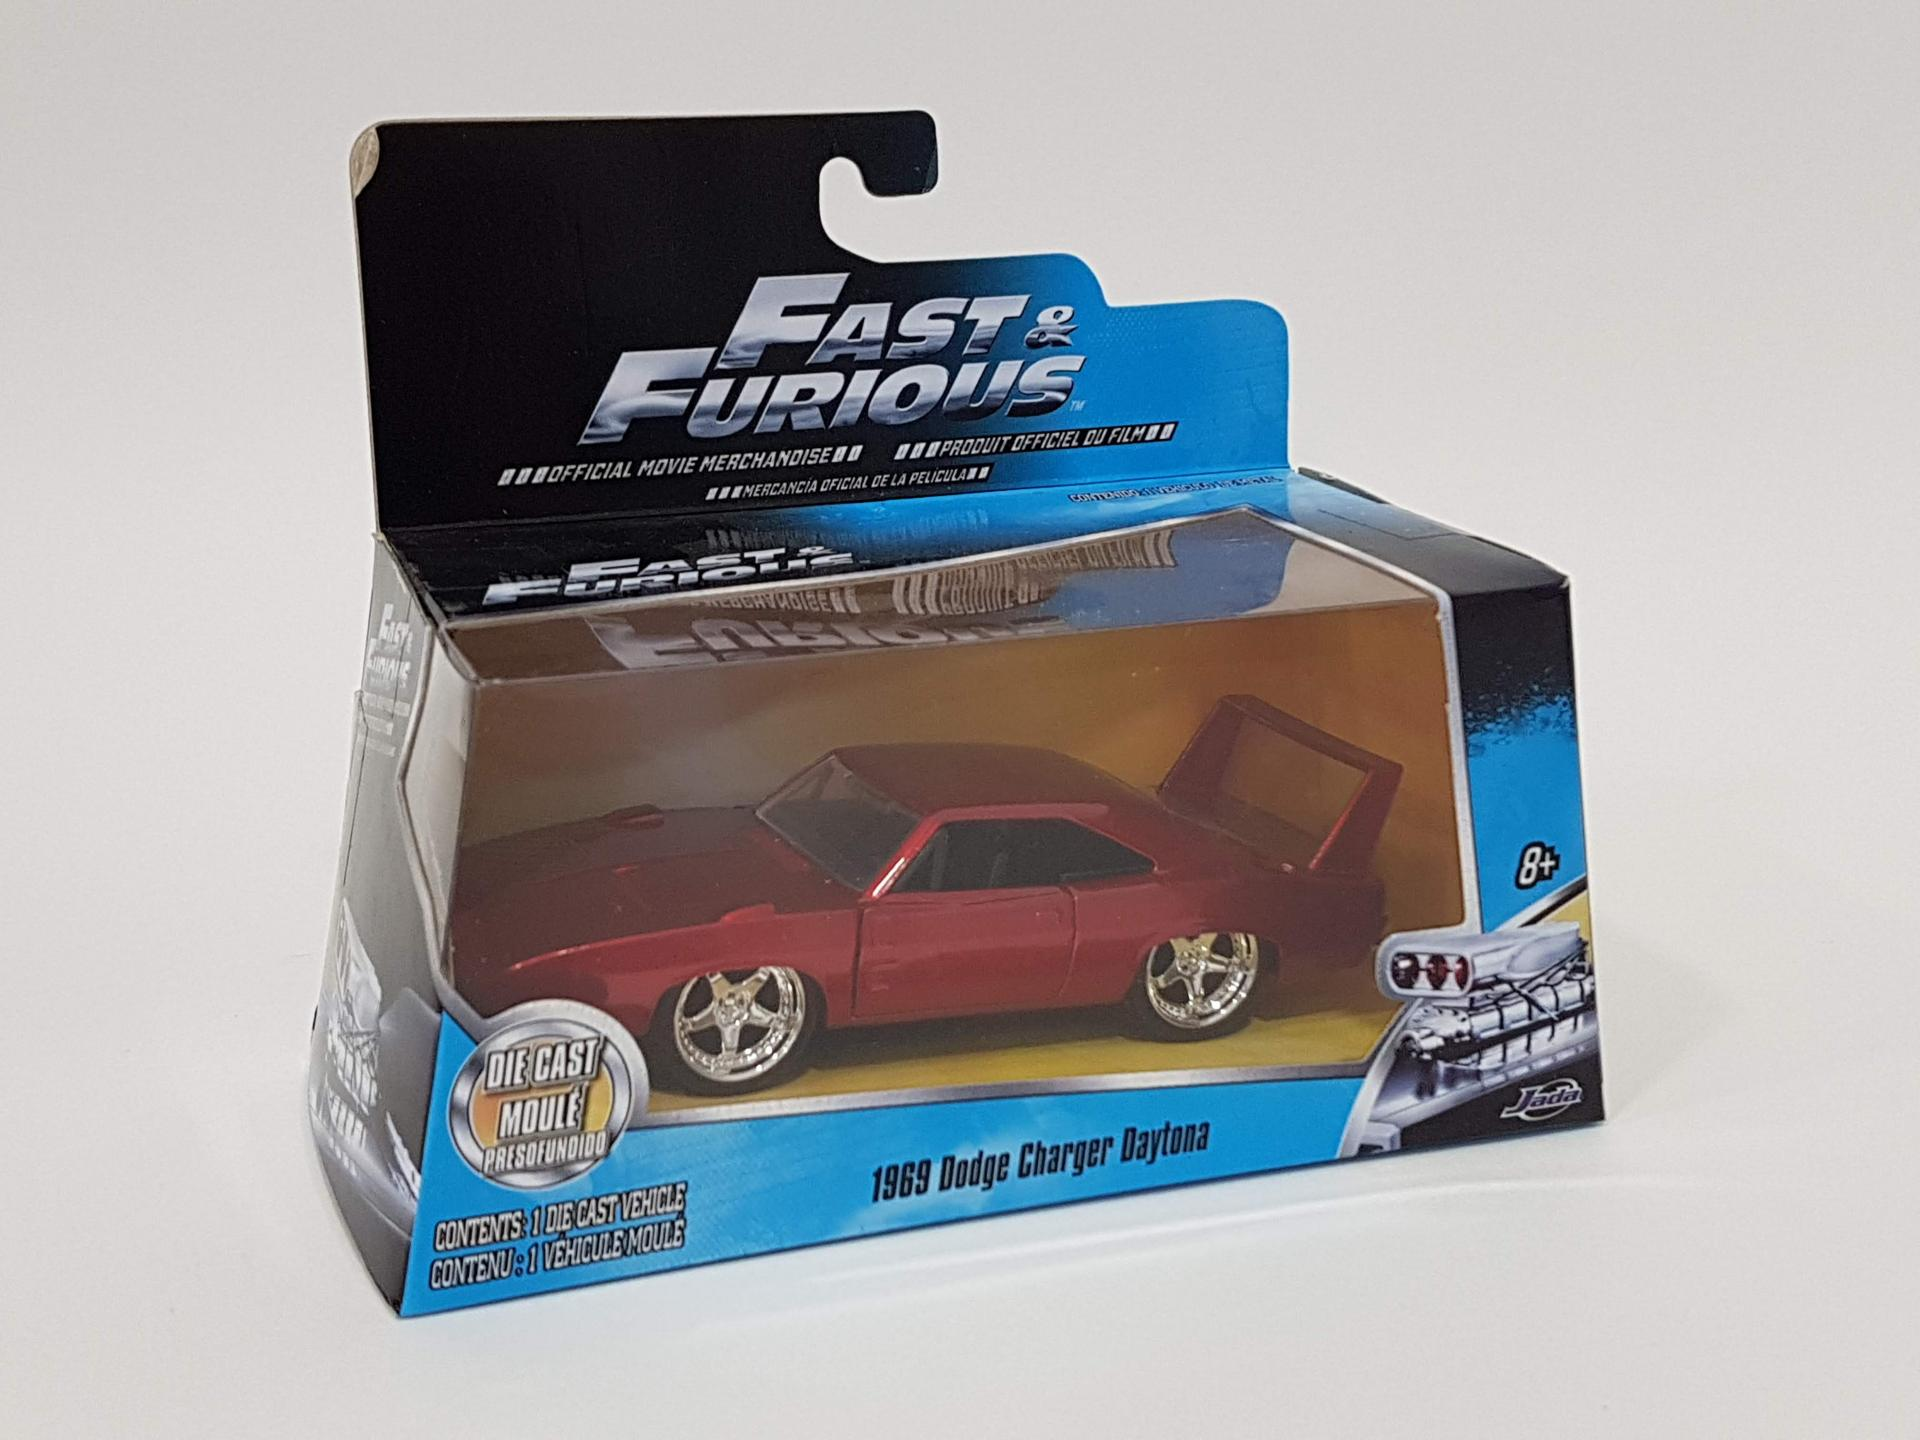 1/32 Dodge Charger Daytona 1969 Fast and Furious